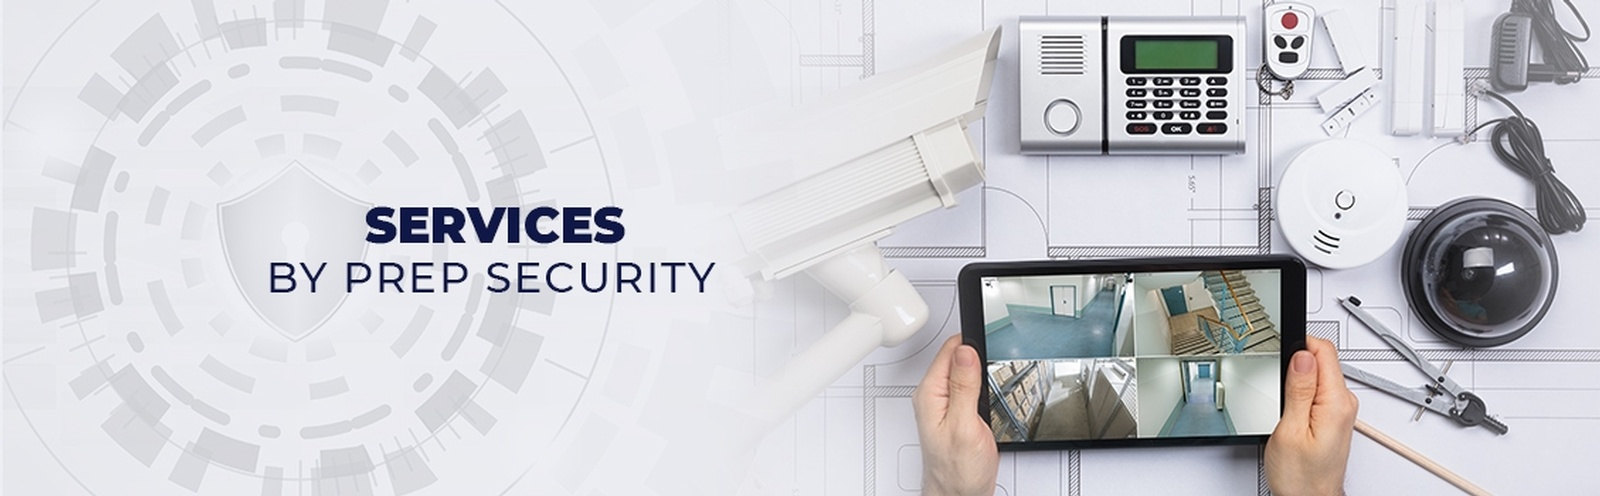 Security System Services Ballwin by Prep Security